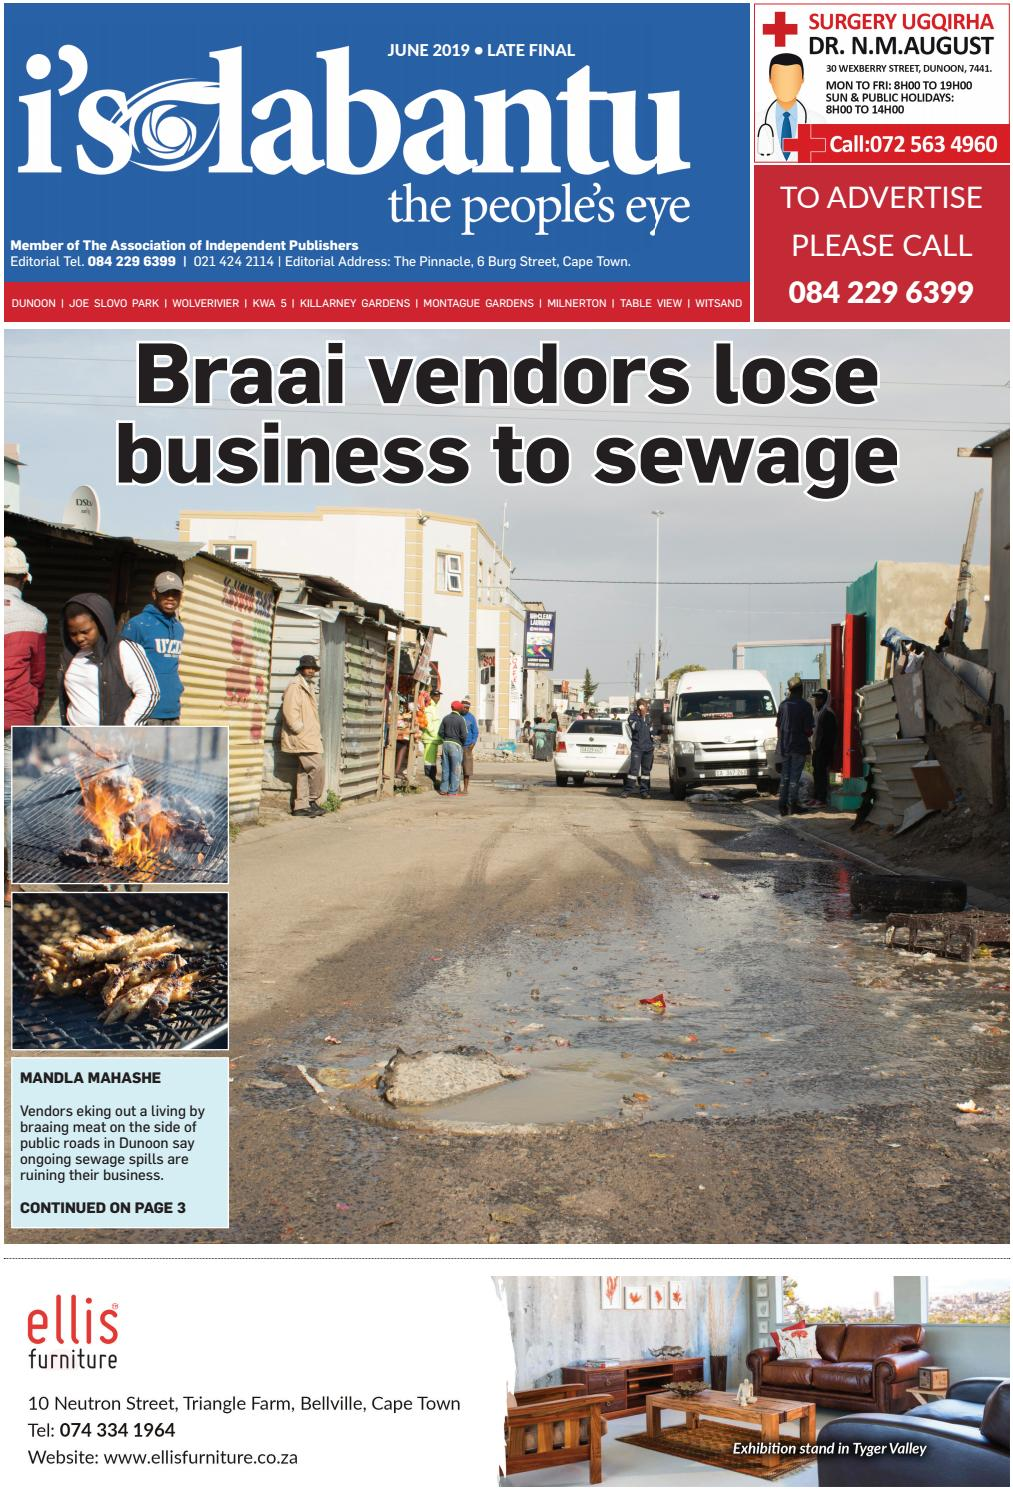 Isolabantu News June 2019 late final edition by Isolabantu